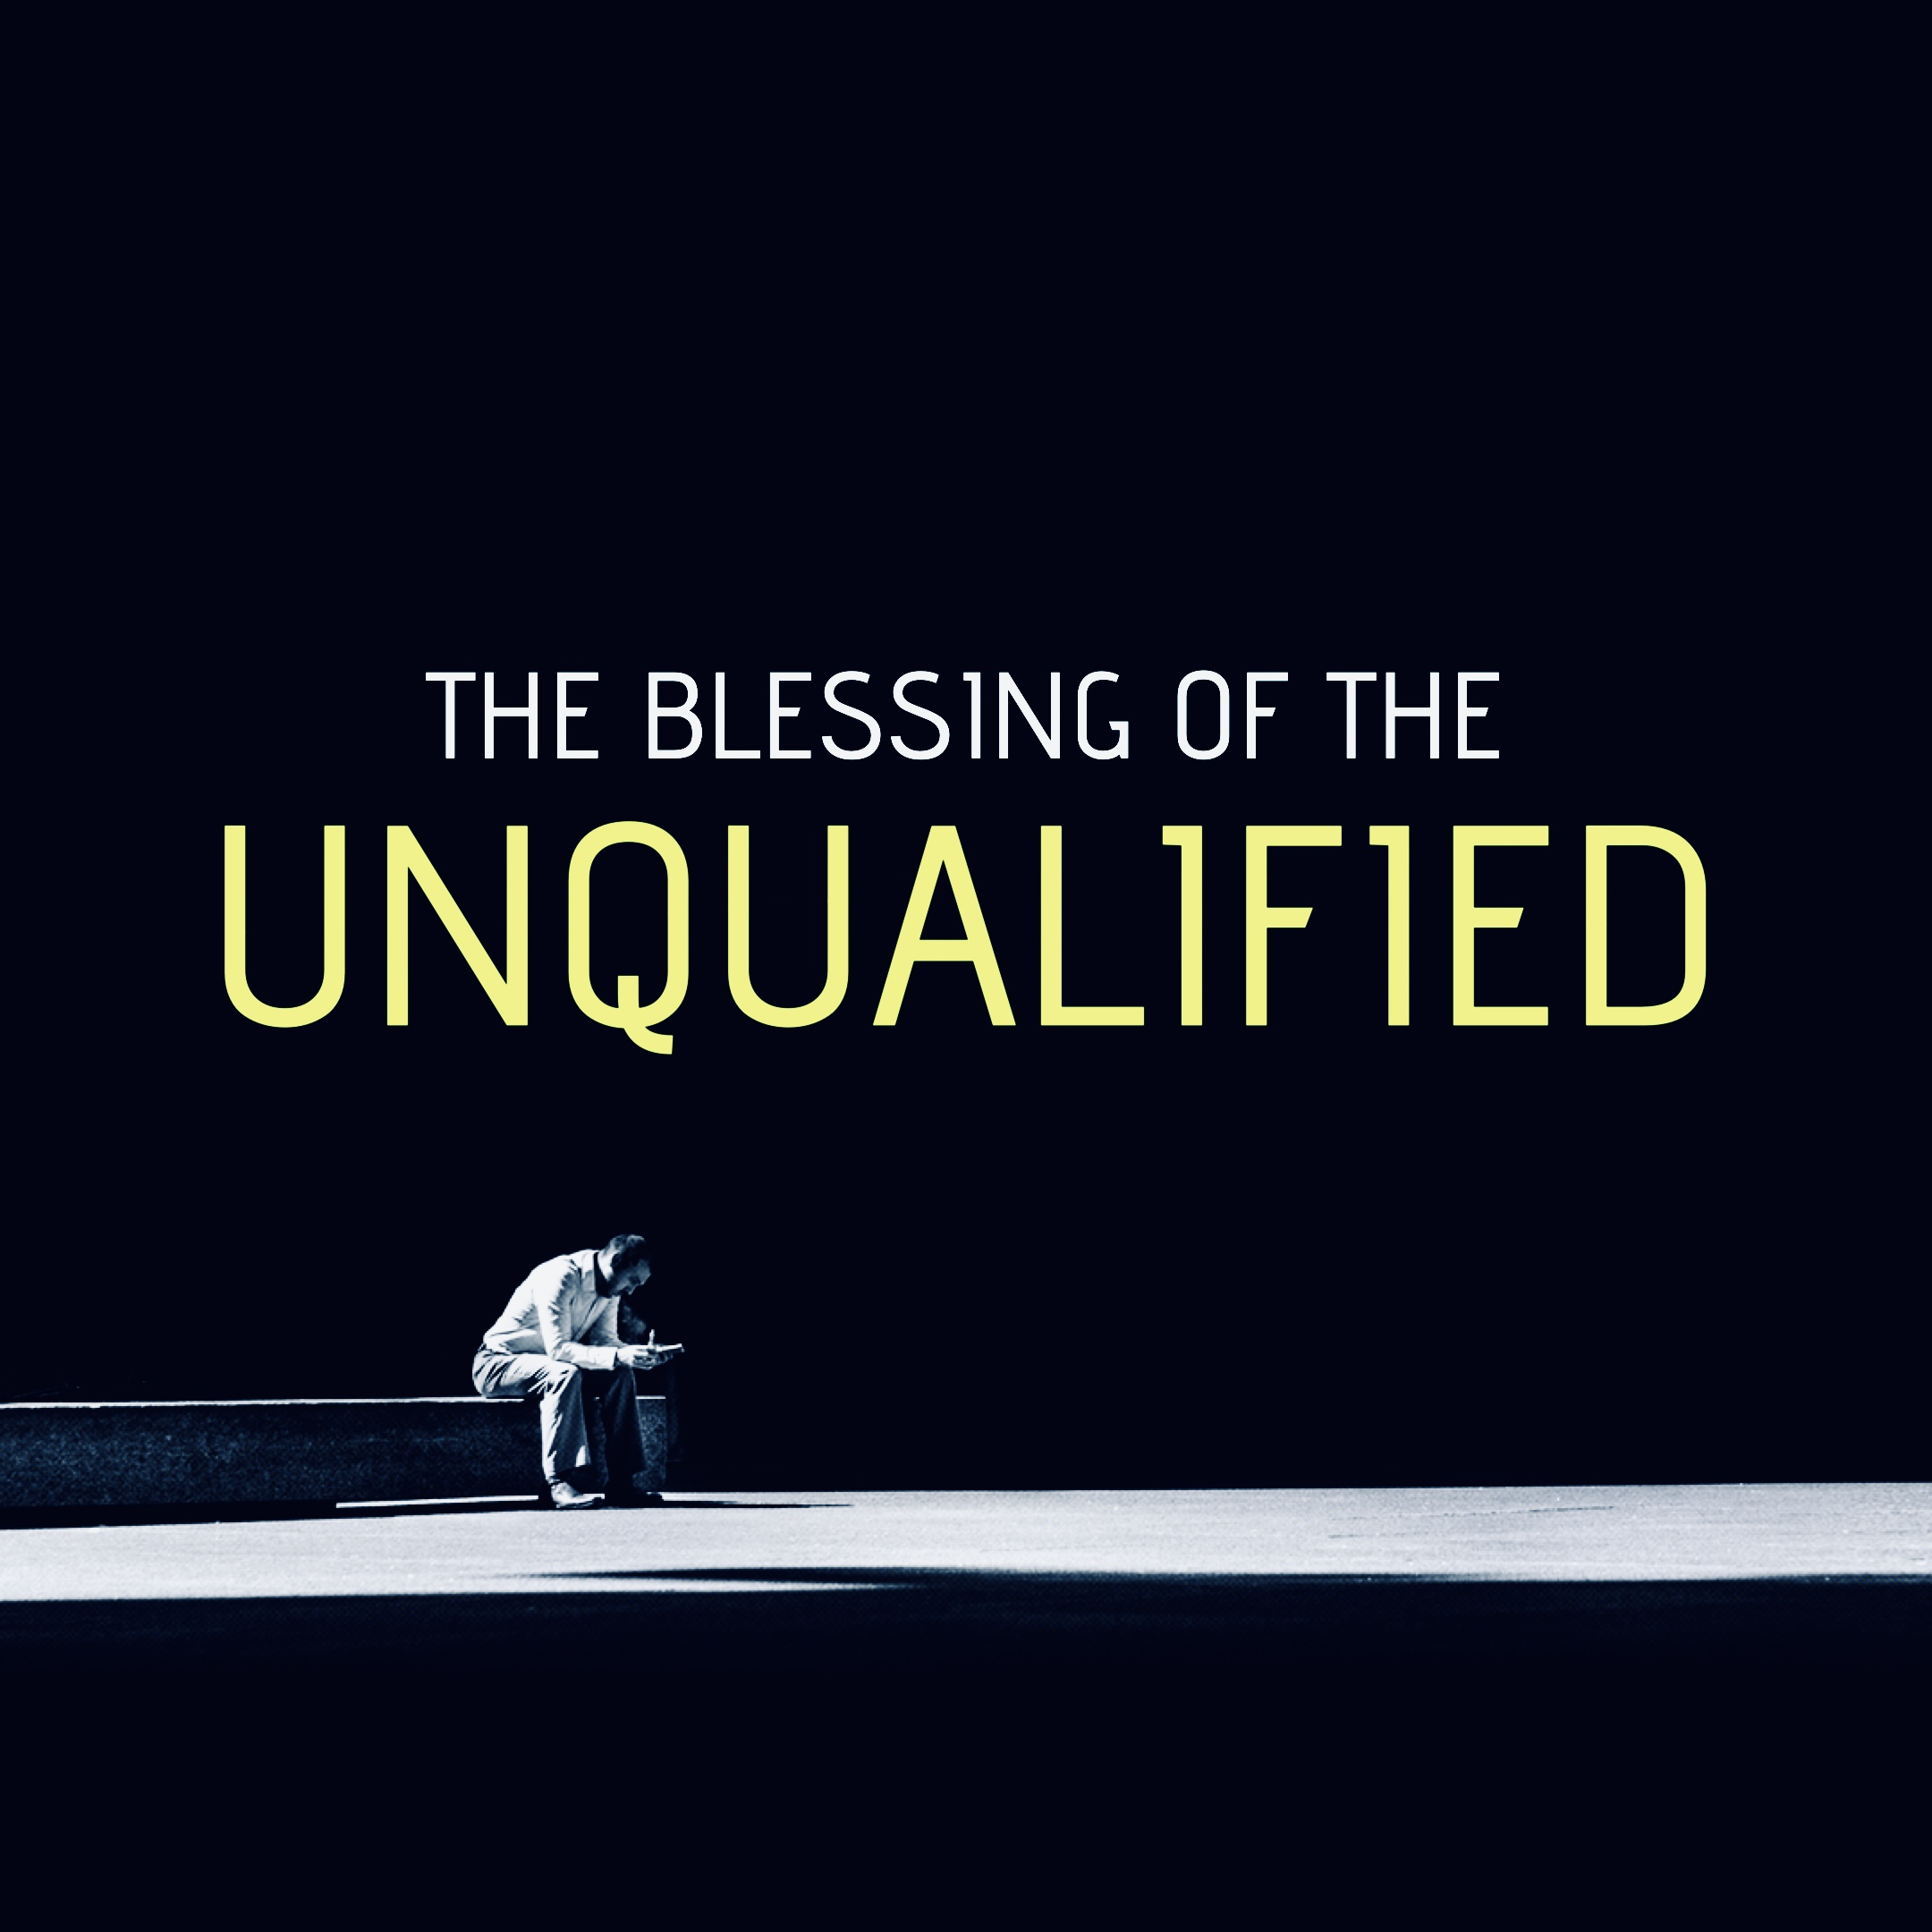 The Blessing of the Unqualified